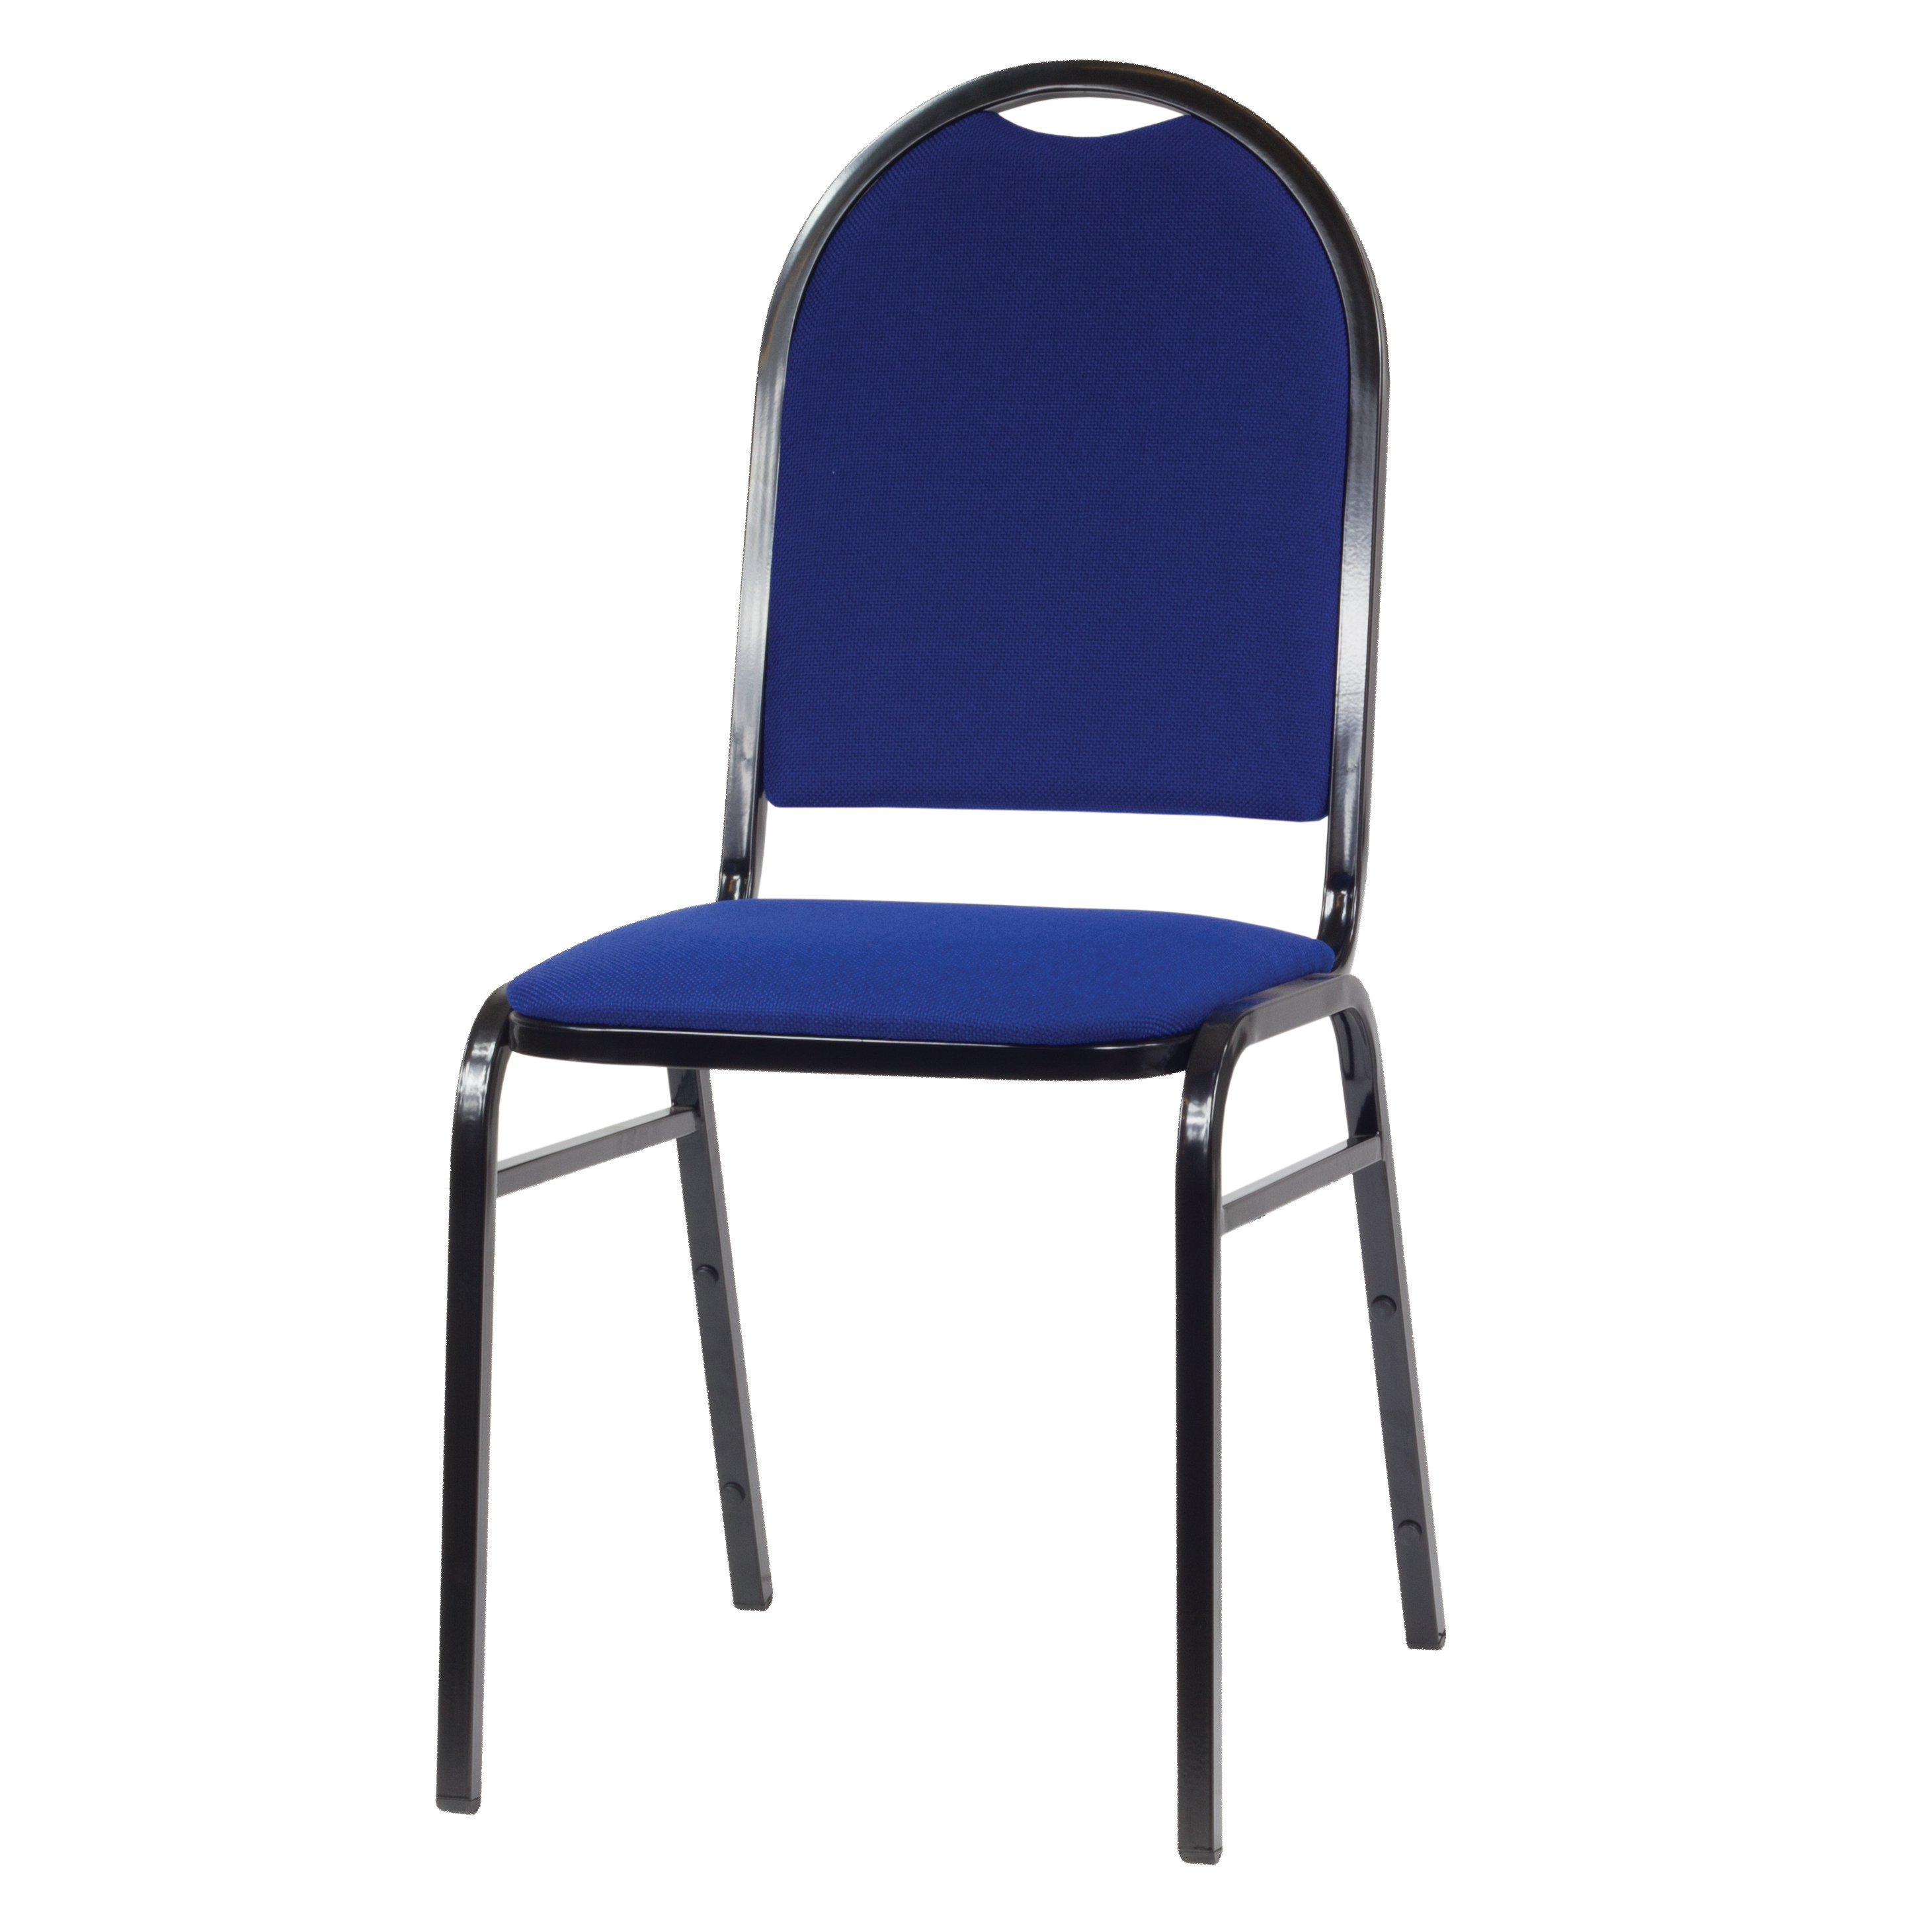 Cambridge Stacking Chair Contract Furniture Manufacturers